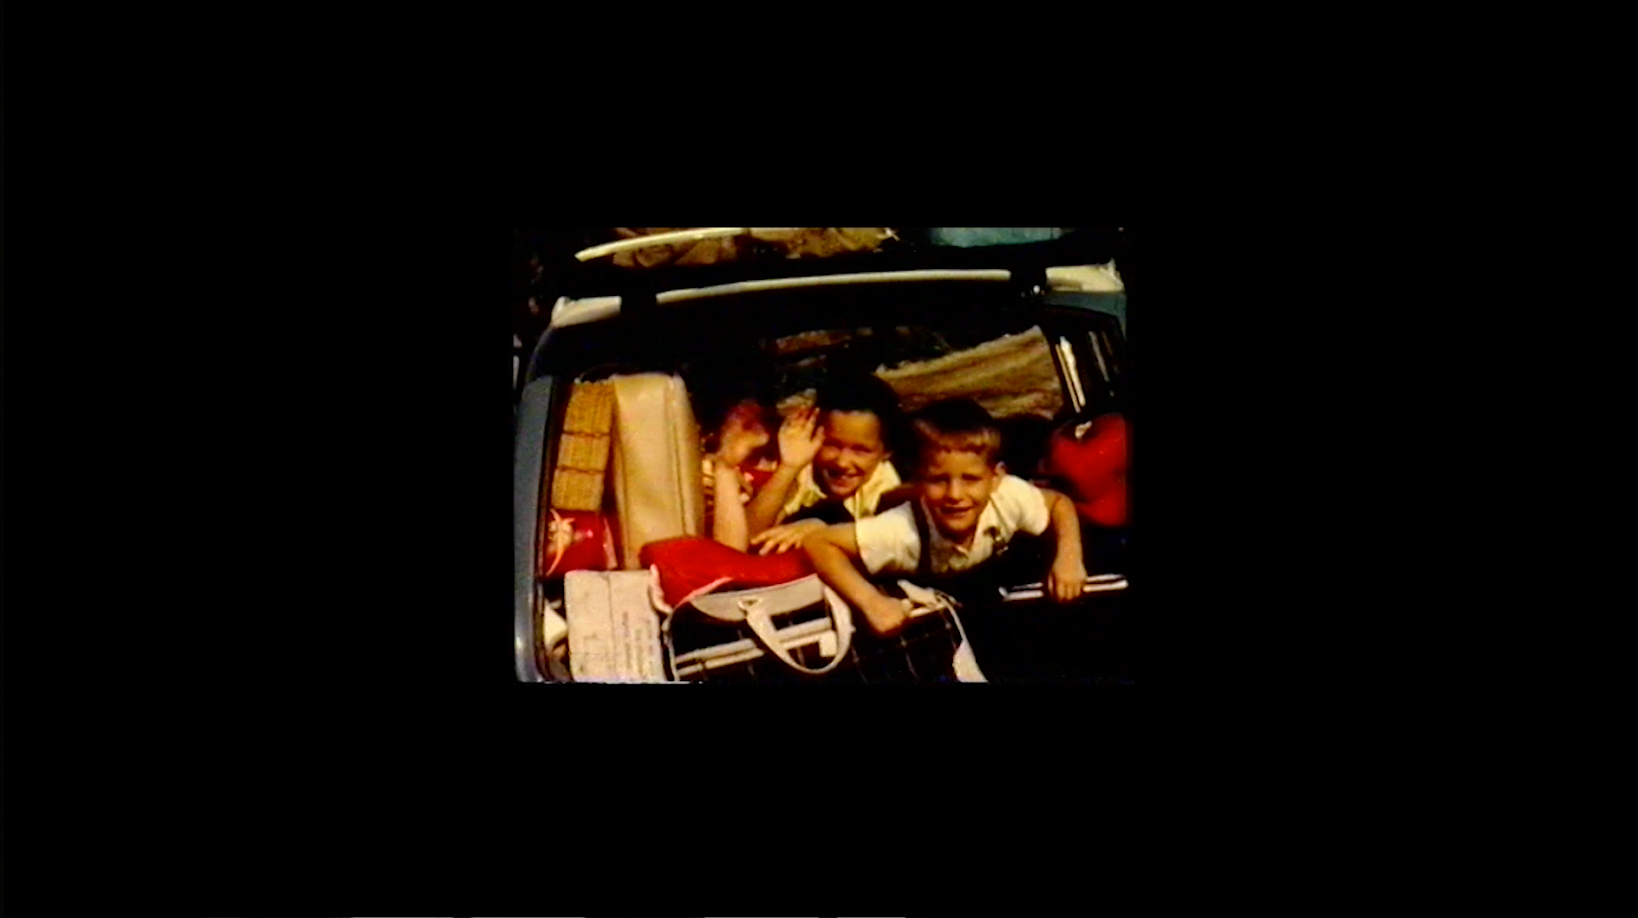 Video, 23min. The 8mm & Super 8 films are from the archive of Elisabeth S. In German, English subtitles.